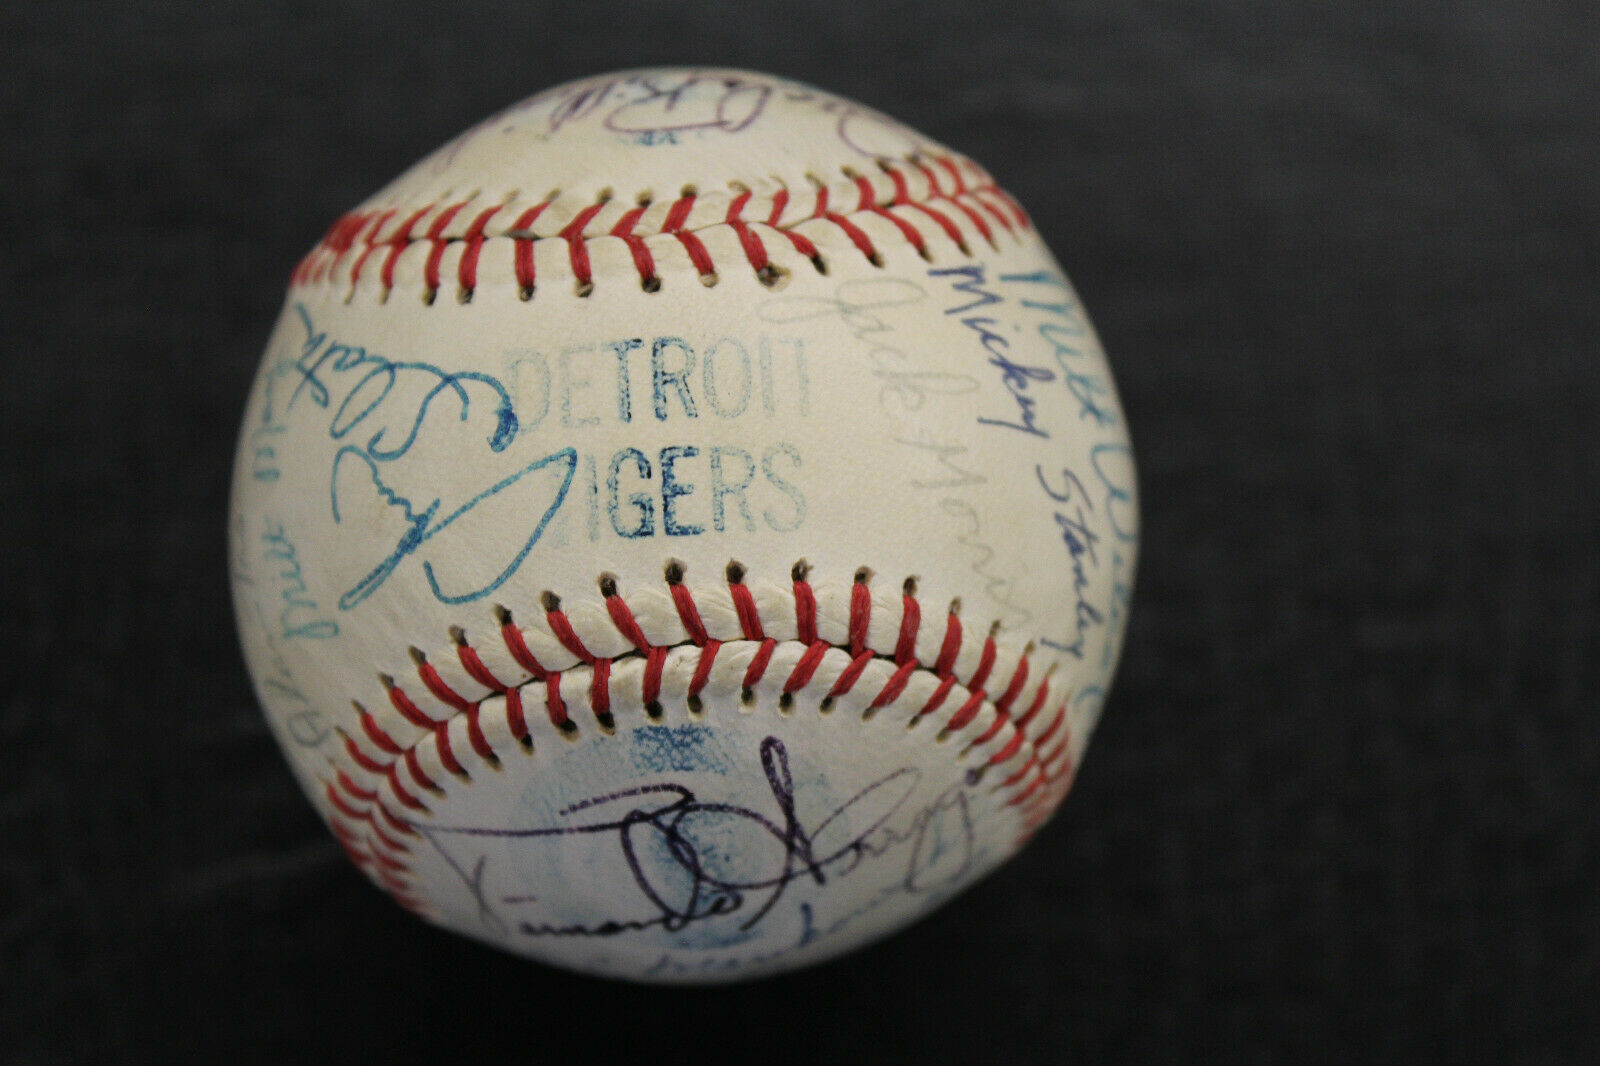 Primary image for 1978 Detroit Tigers Team Signed Ball 26 Signatures Trammell Moris Kemp Fidrych